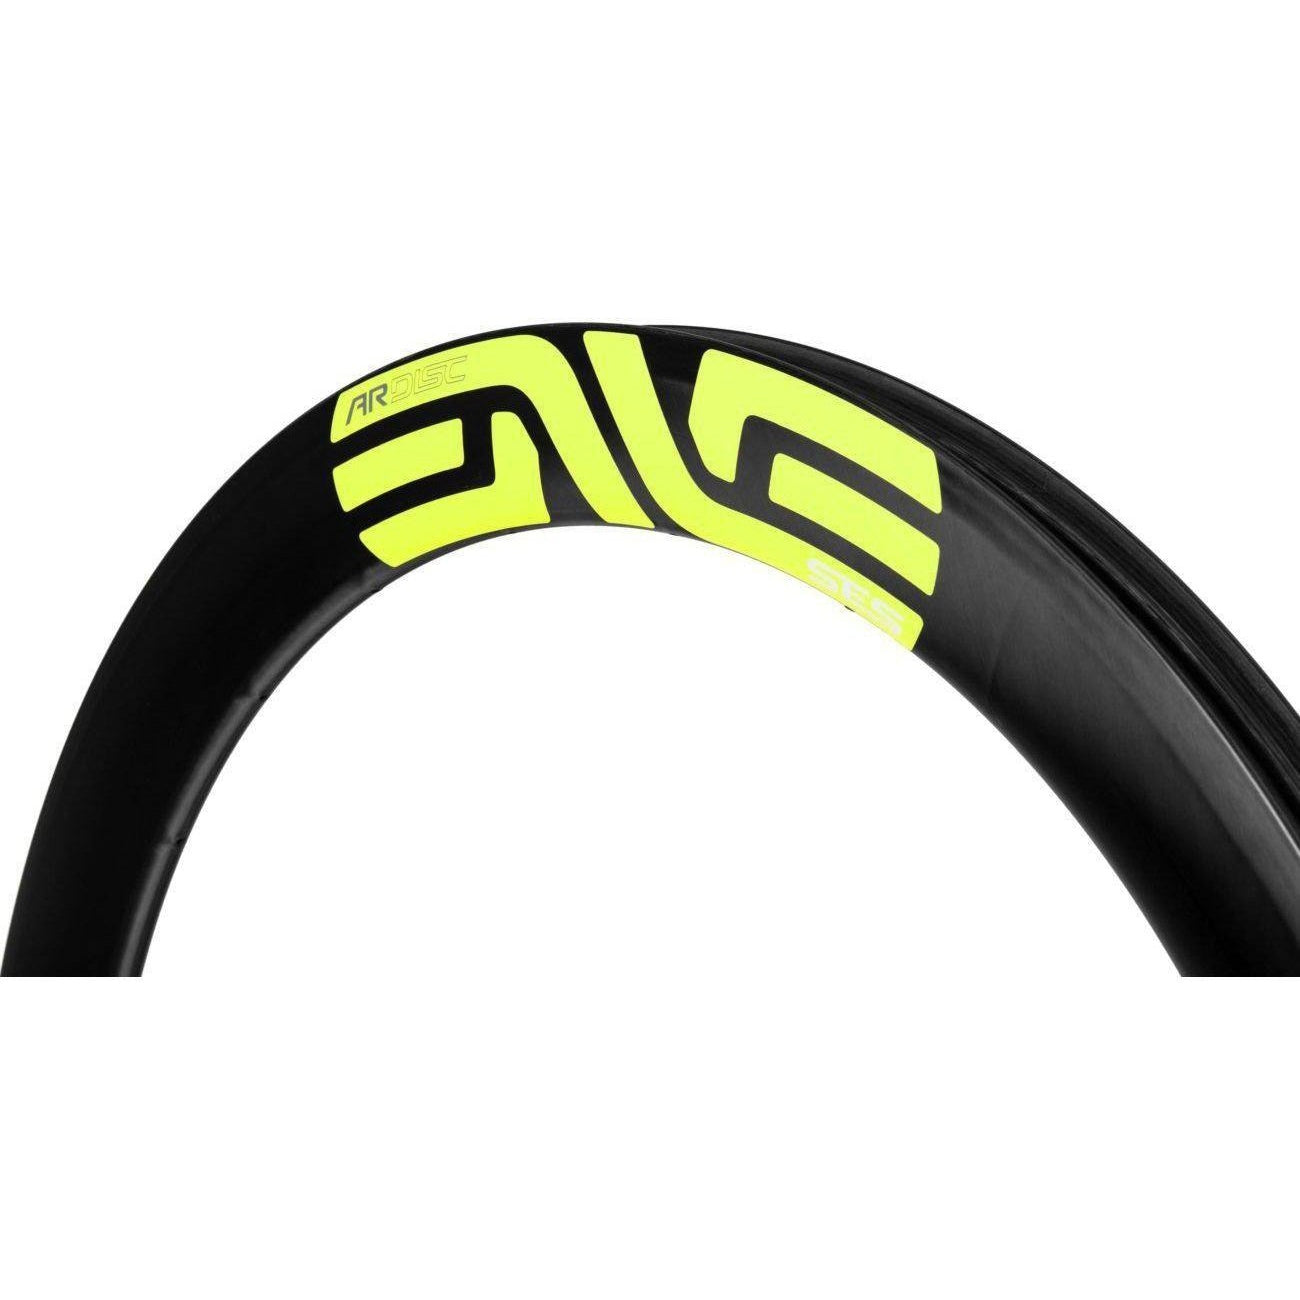 ENVE-ENVE SES 4.5 AR Disc Decals-SES 4.5 AR Disc-Rear 55mm-Neon Yellow-EN70001000685-saddleback-elite-performance-cycling